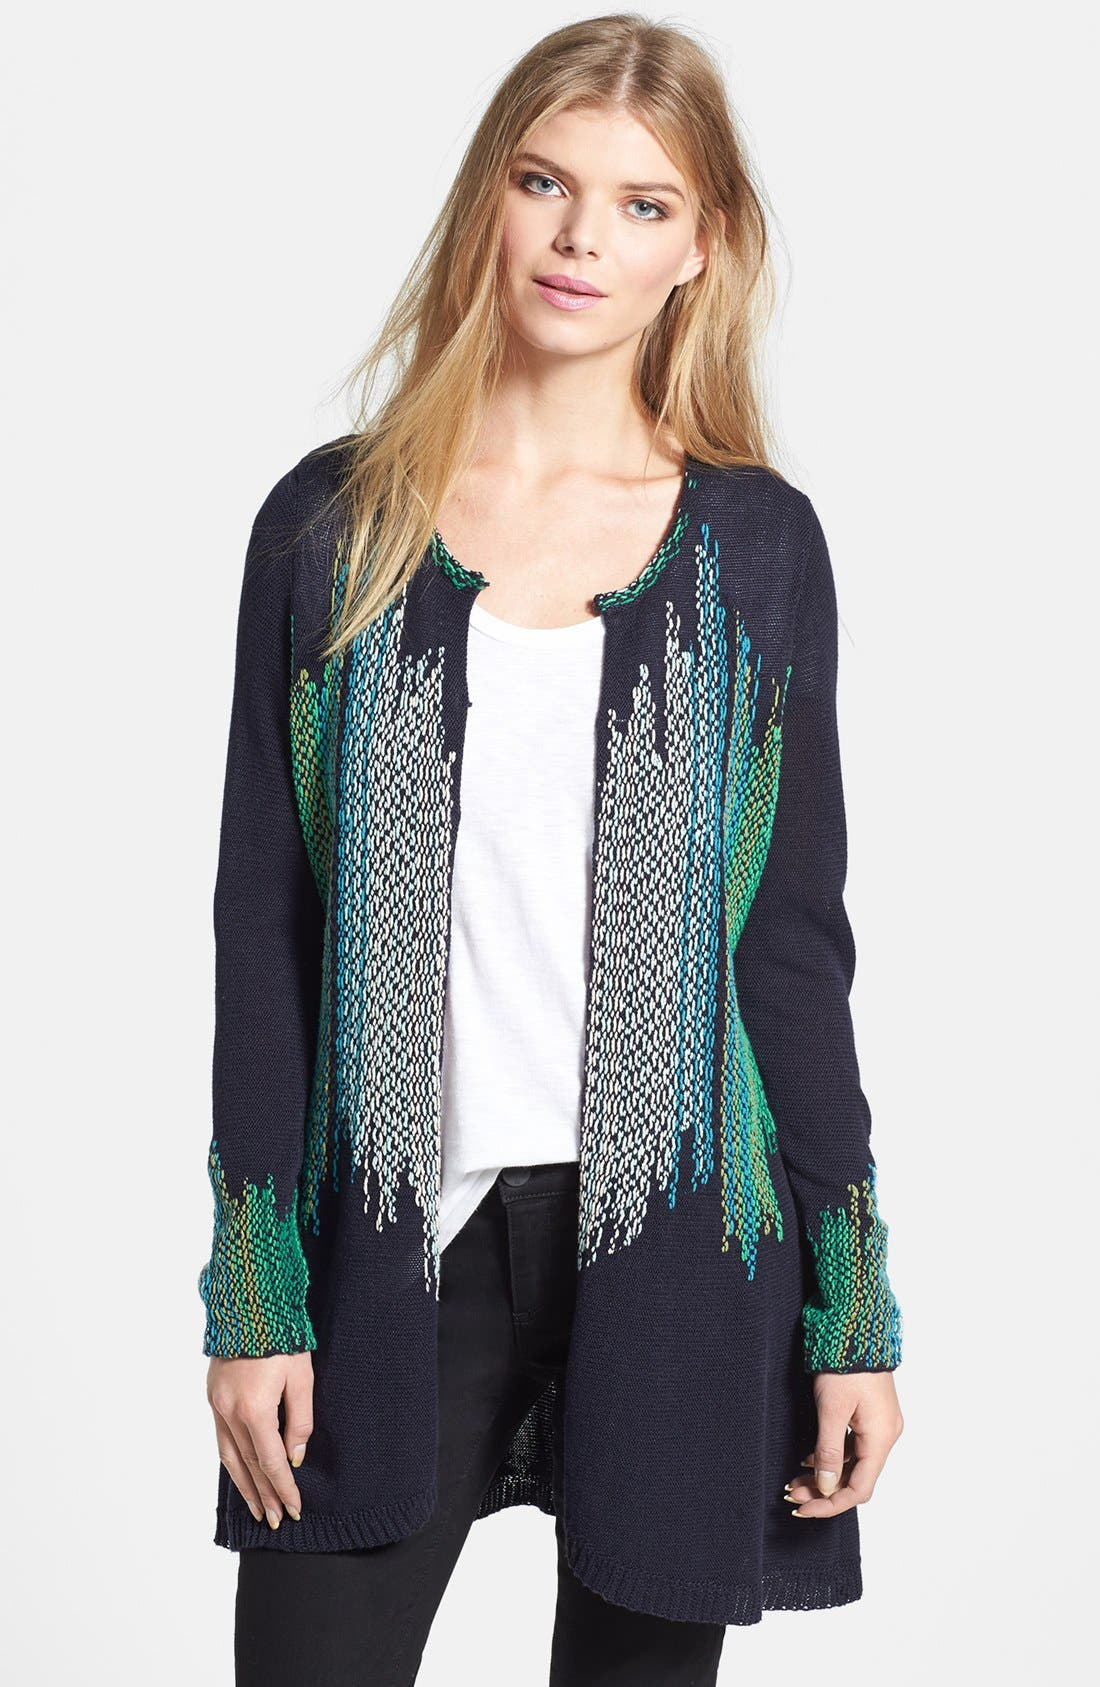 Main Image - NIC+ZOE 'Color Weave' Cardigan